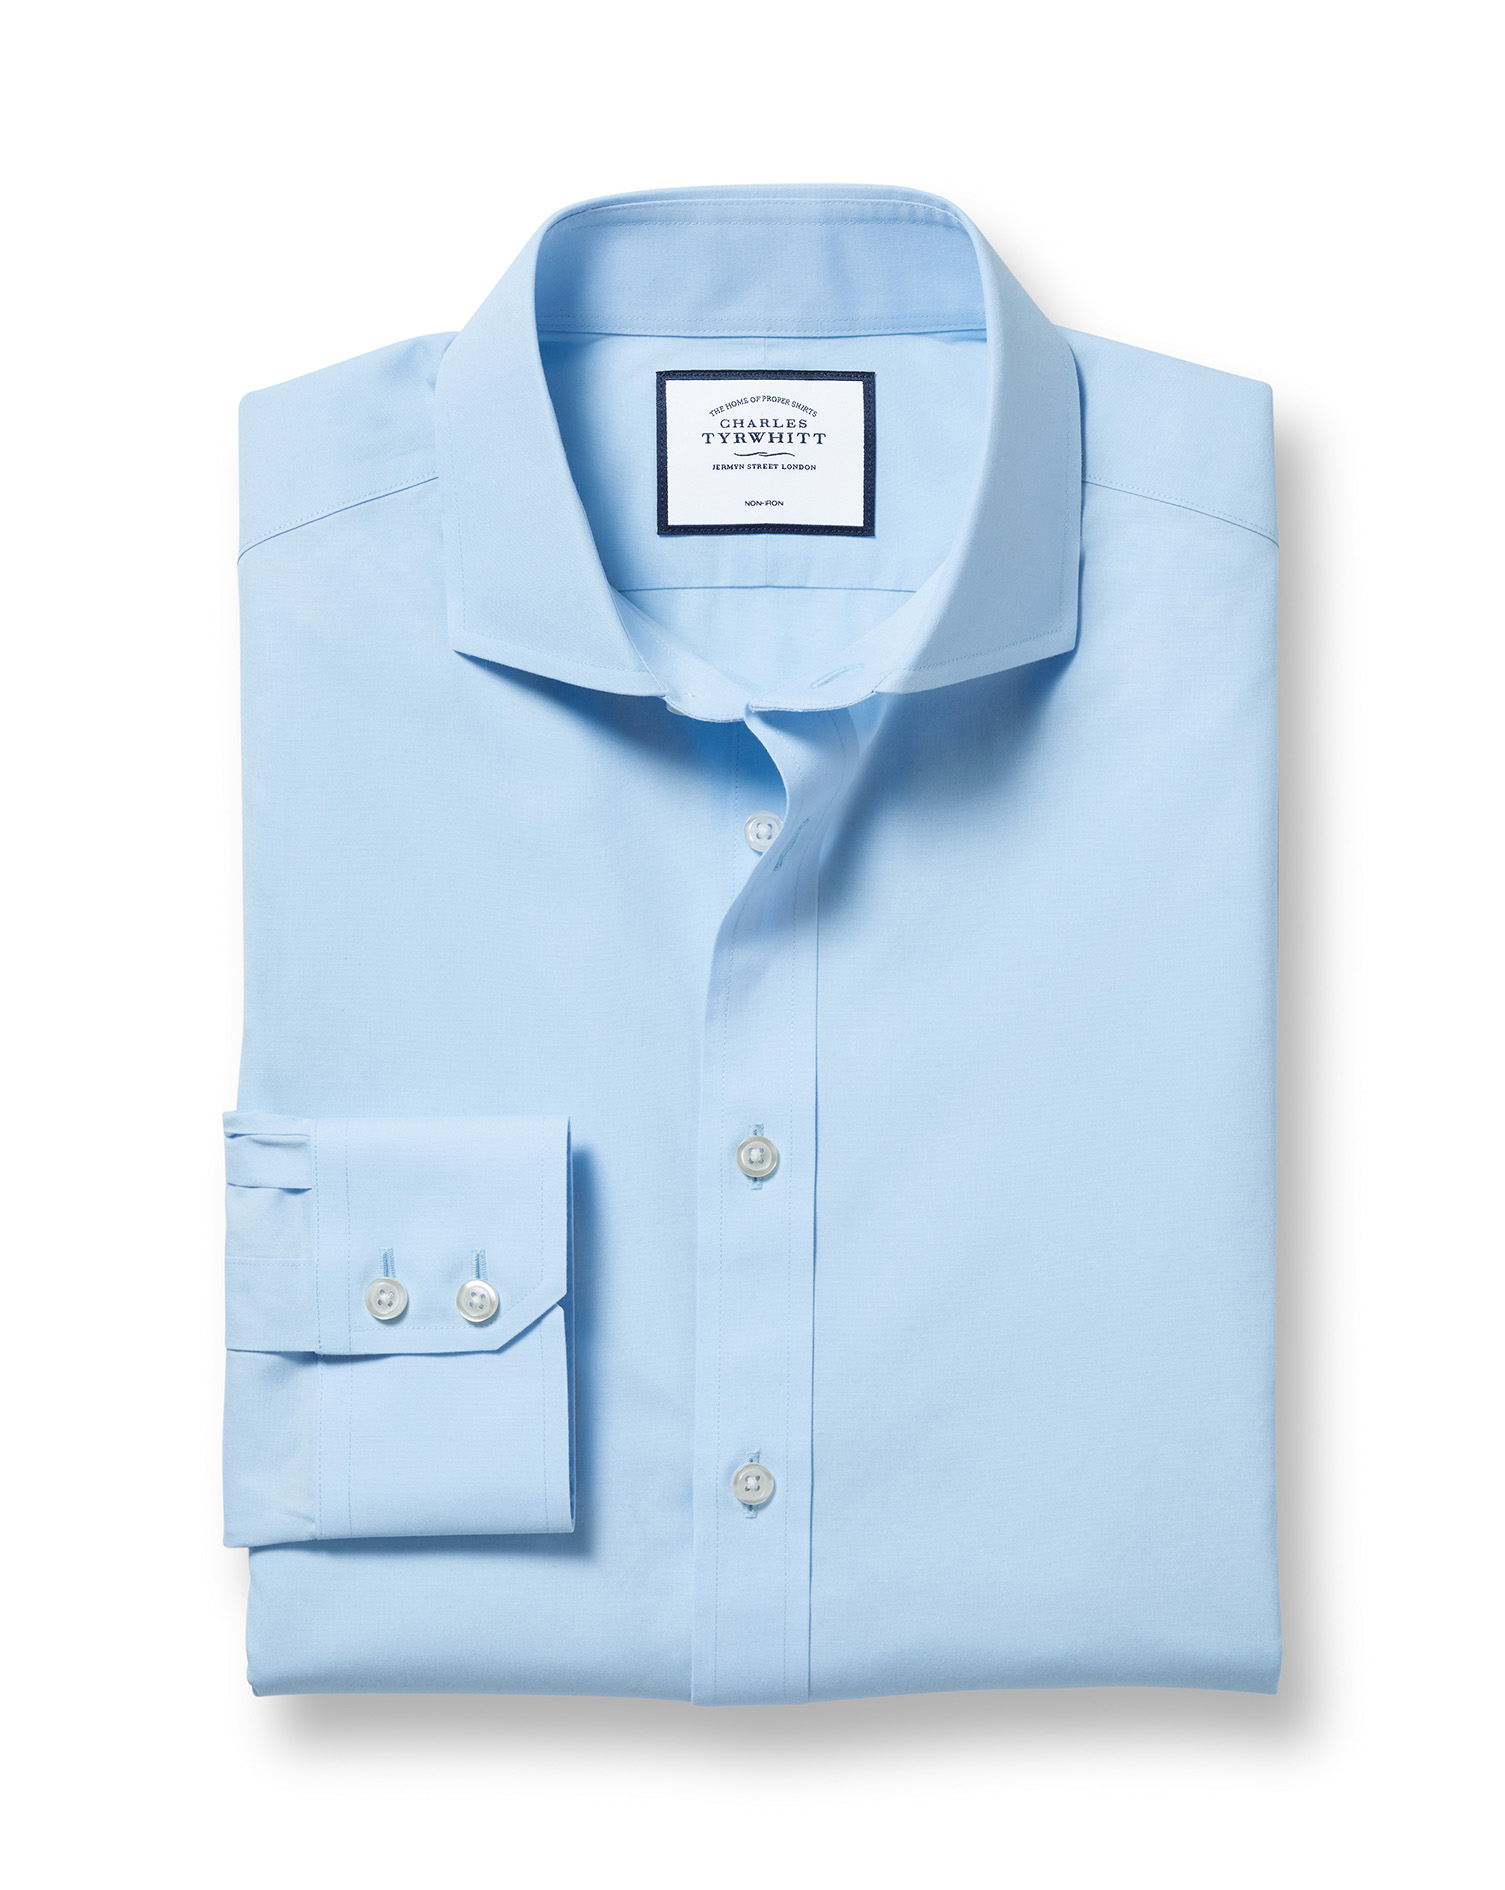 Extra Slim Fit Sky Blue Non-Iron Poplin Cutaway Cotton Formal Shirt Single Cuff Size 16/34 by Charle